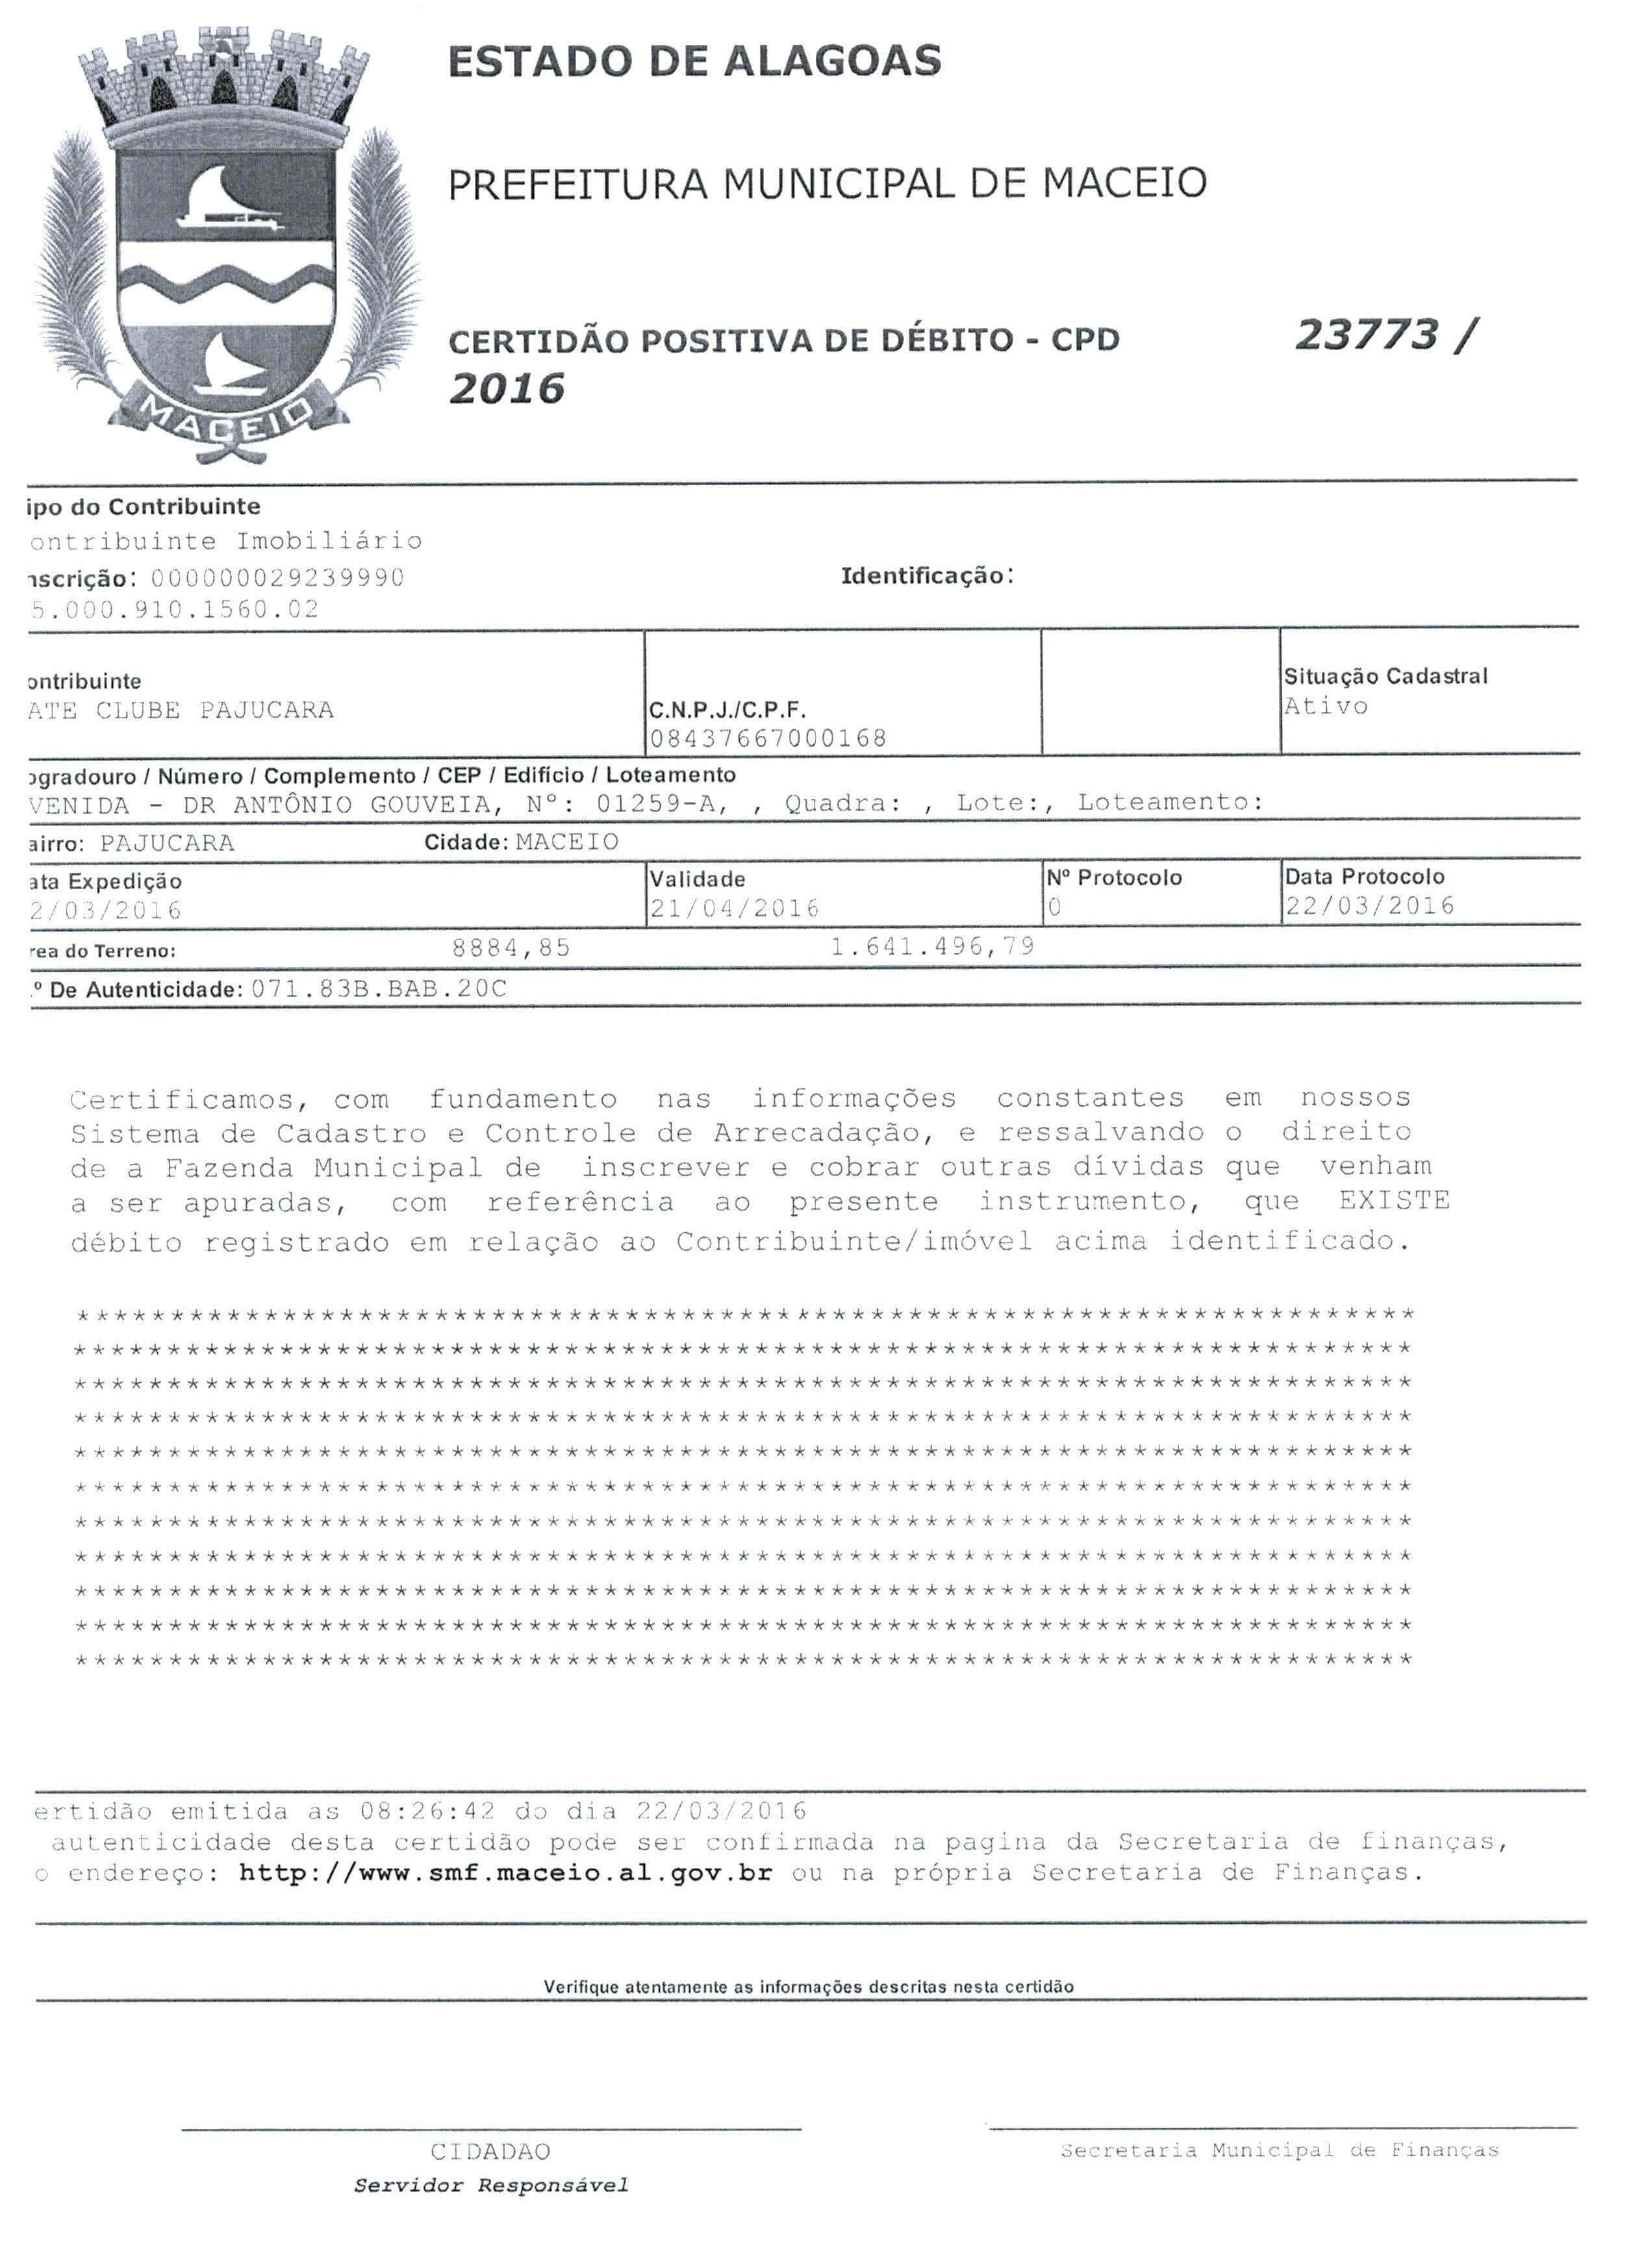 CERTIDOES IPTU 28 03 16-page-002